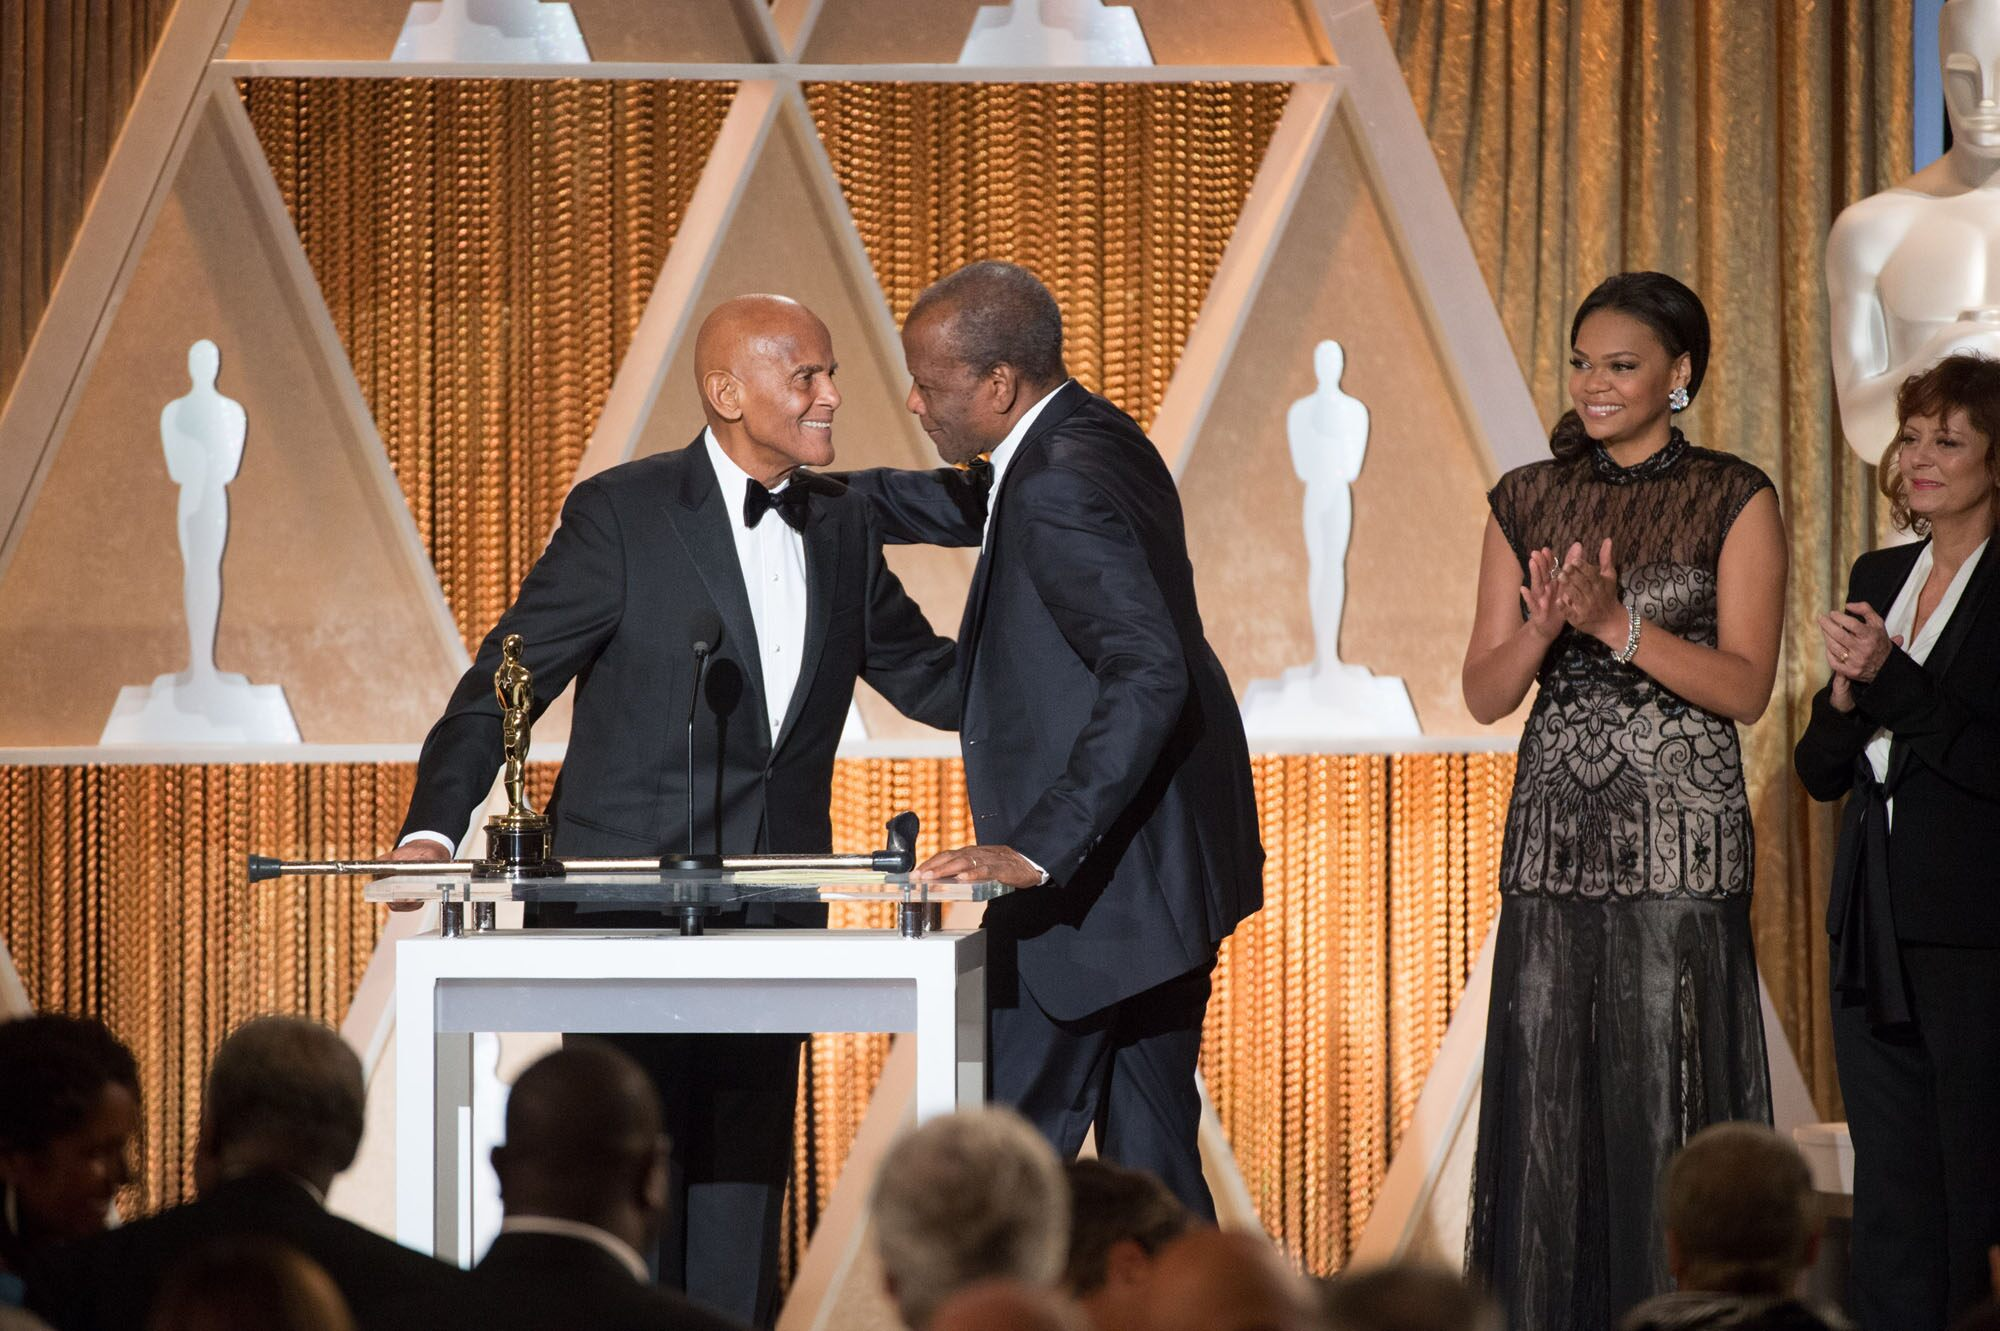 Jean Hersholt Humanitarian Award to Harry Belafonte (left) and Oscar®-winning actor Sidney Poitier during the 2014 Governors Awards